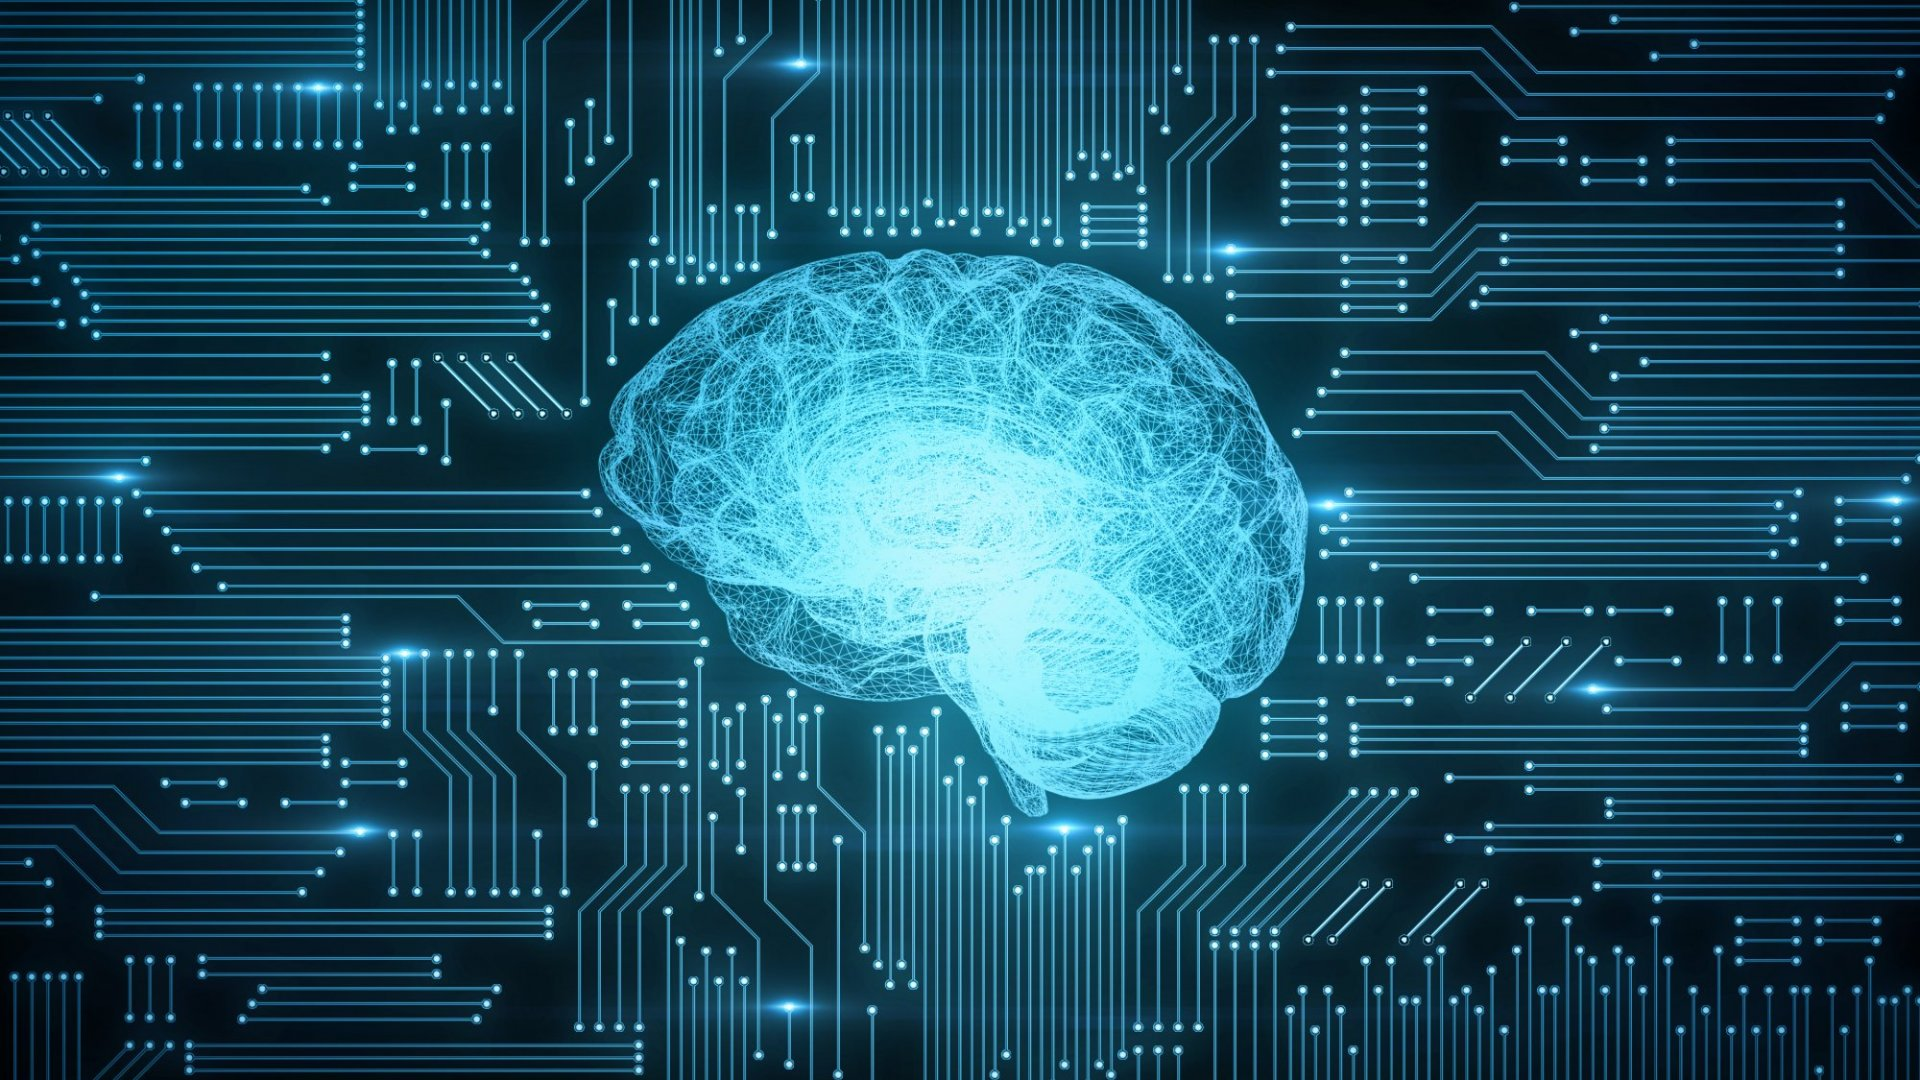 Planning to Use A.I. in 2020? You Need to Make These Resolutions First